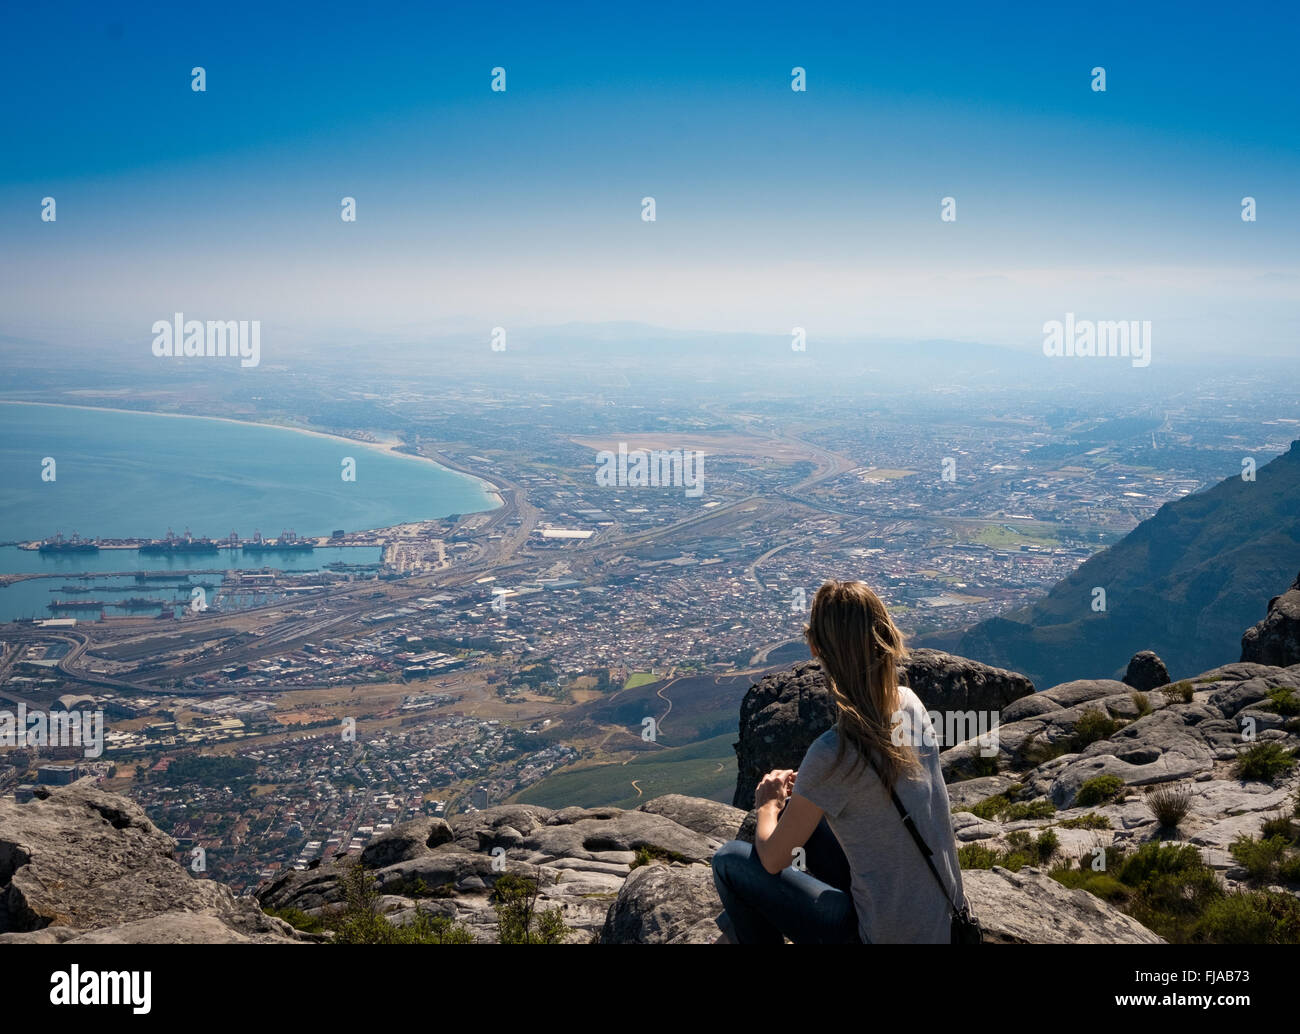 Meditation on Table Mountain, Cape Town, Western Cape, South Africa - Stock Image